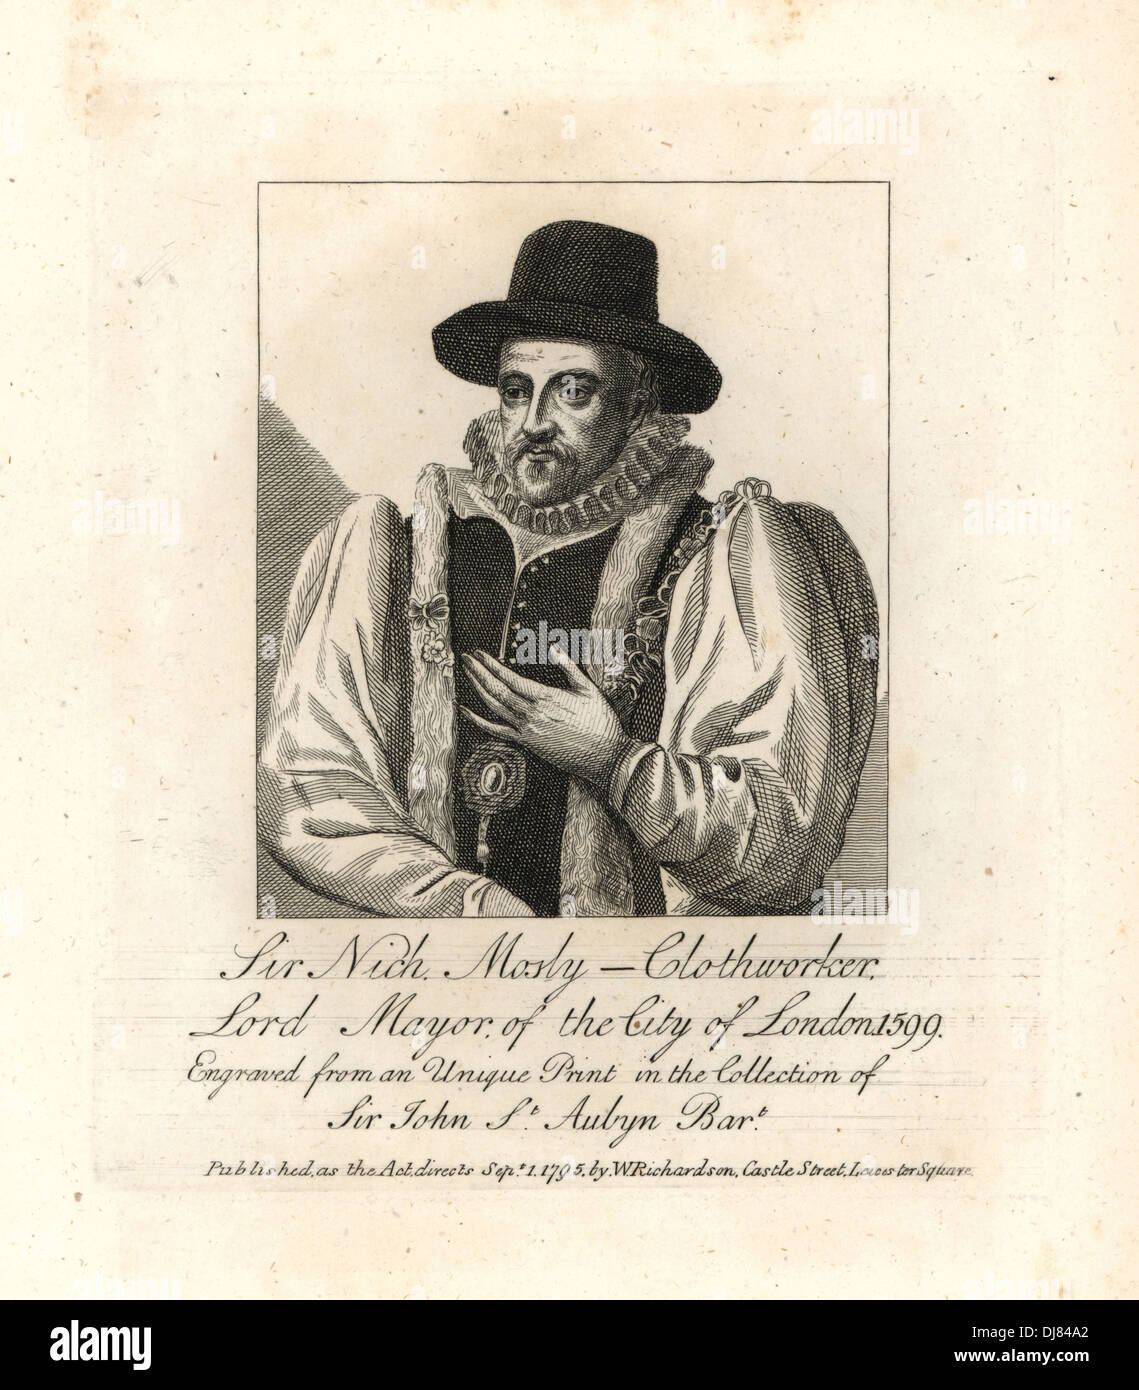 Sir Nicholas Mosly, Clothworker, Lord Mayor of London, 1599. - Stock Image